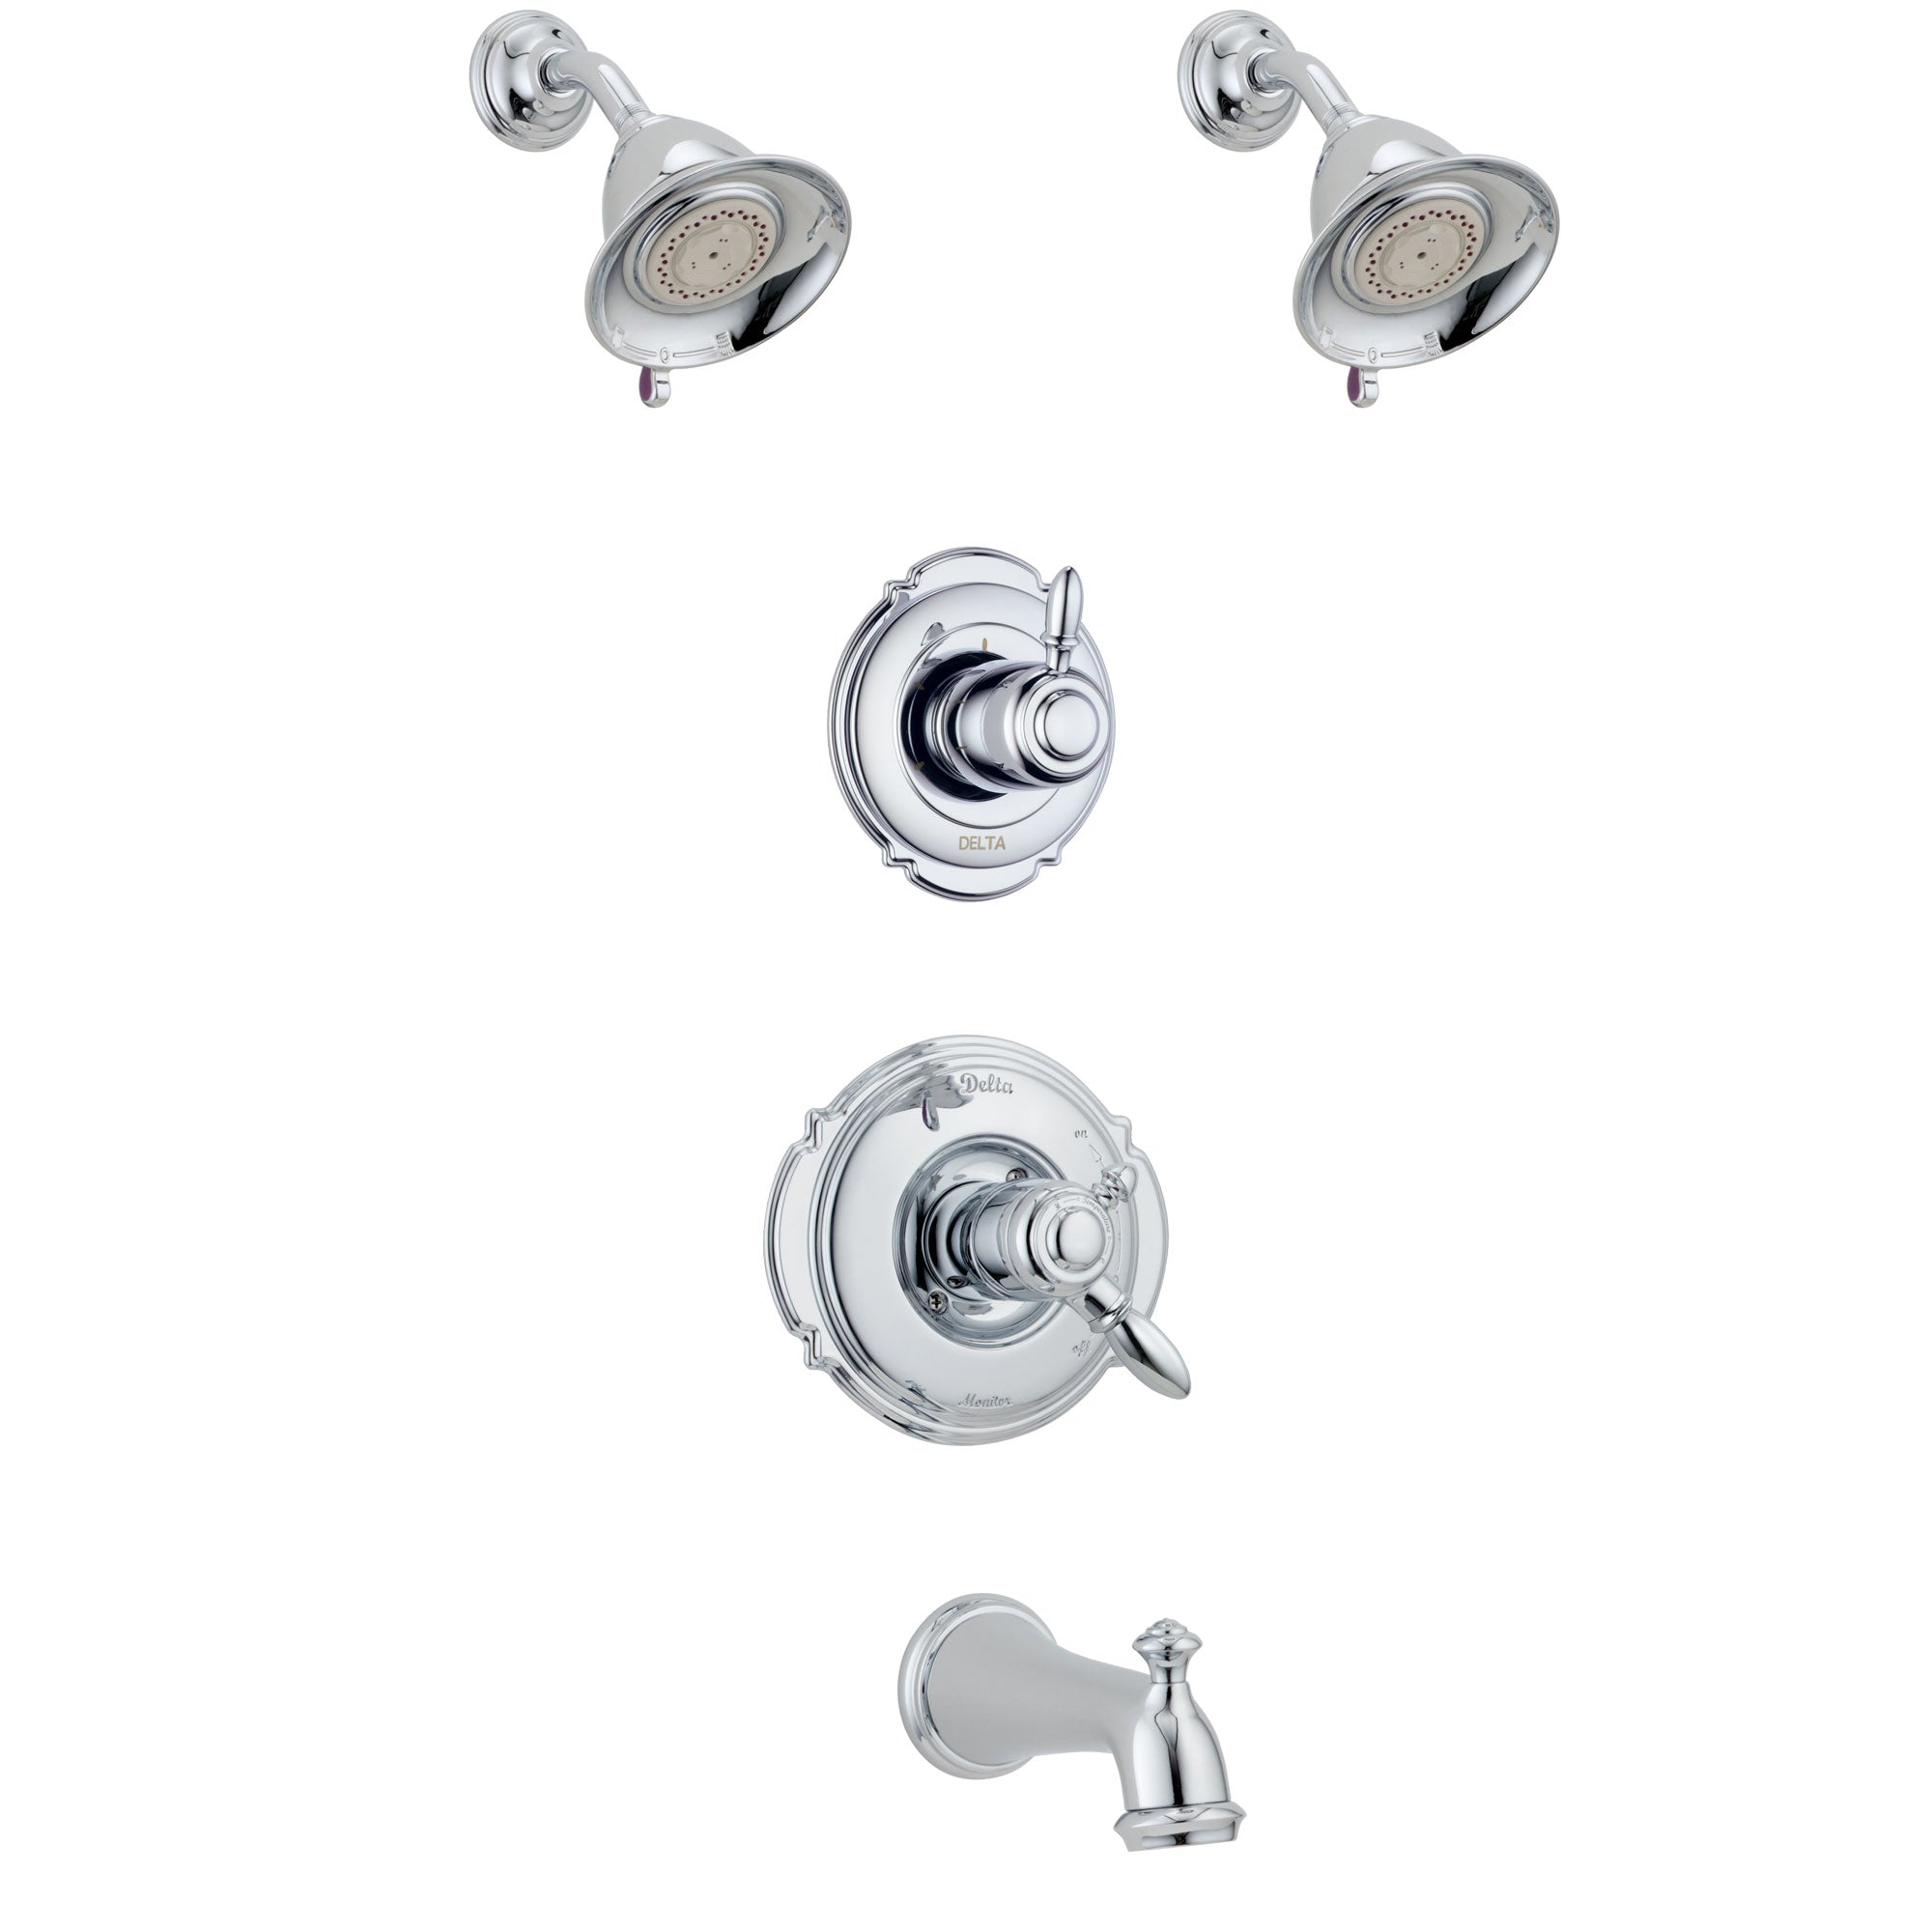 Delta Victorian Chrome Finish Tub and Shower System with Dual Control Handle, 3-Setting Diverter, 2 Showerheads SS1745516